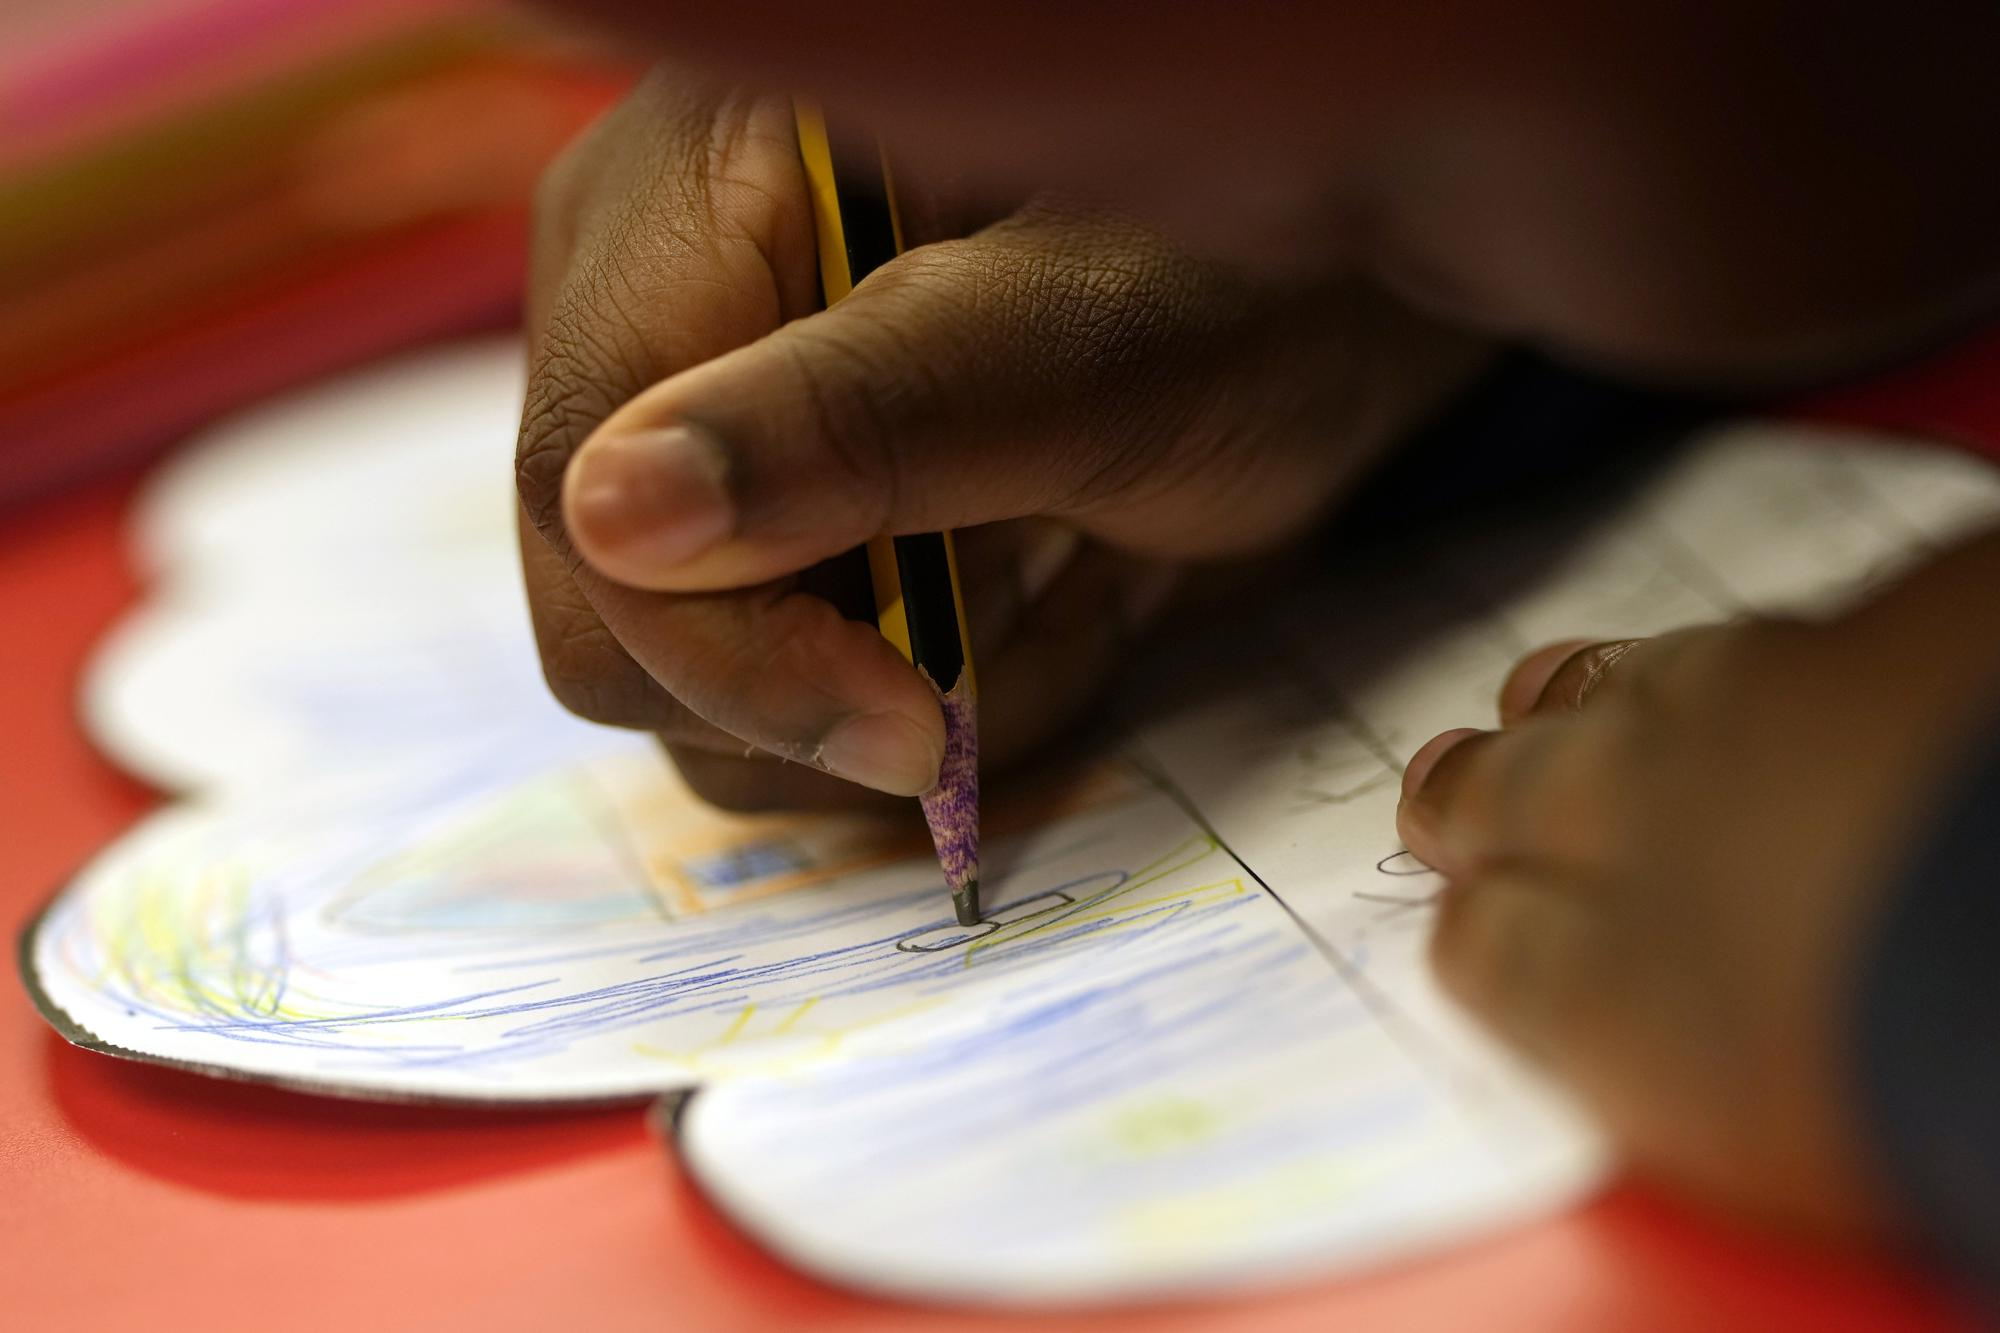 A pupil writes with a pencil during a lesson at the Holy Family Catholic Primary School in Greenwich in London, Monday, May 24, 2021. Holy Family, like schools across Britain, is racing to offset the disruption caused by COVID-19, which has hit kids from low-income and ethnic minority families hardest. (AP Photo/Alastair Grant)